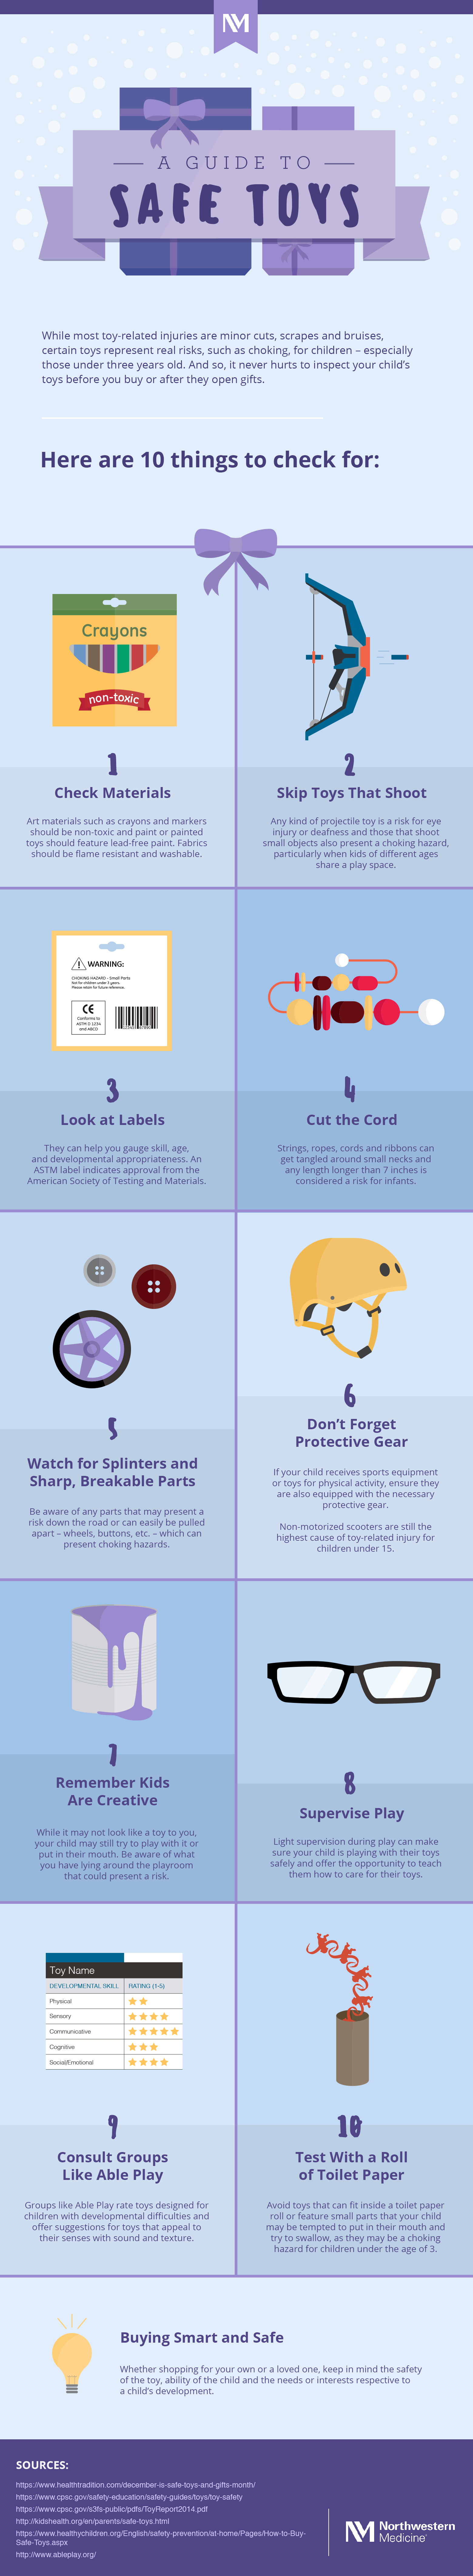 A Guide to Safe Toys [Infographic]